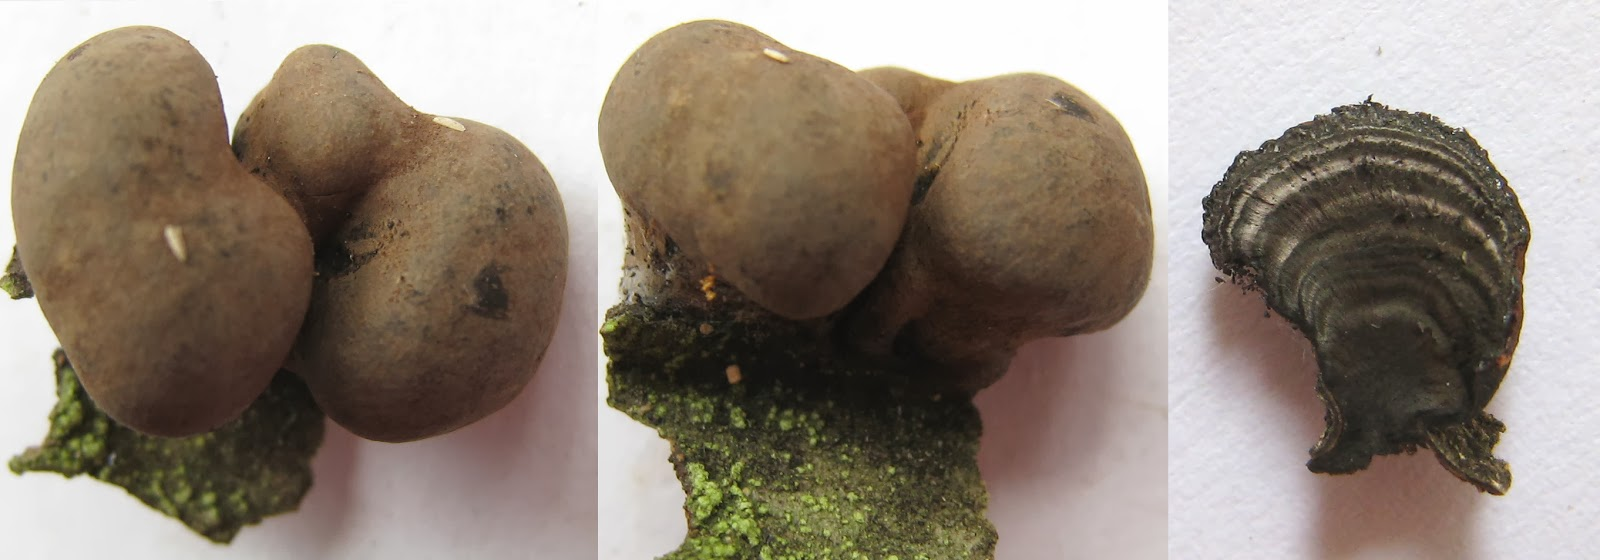 Daldinia whole and cut in half